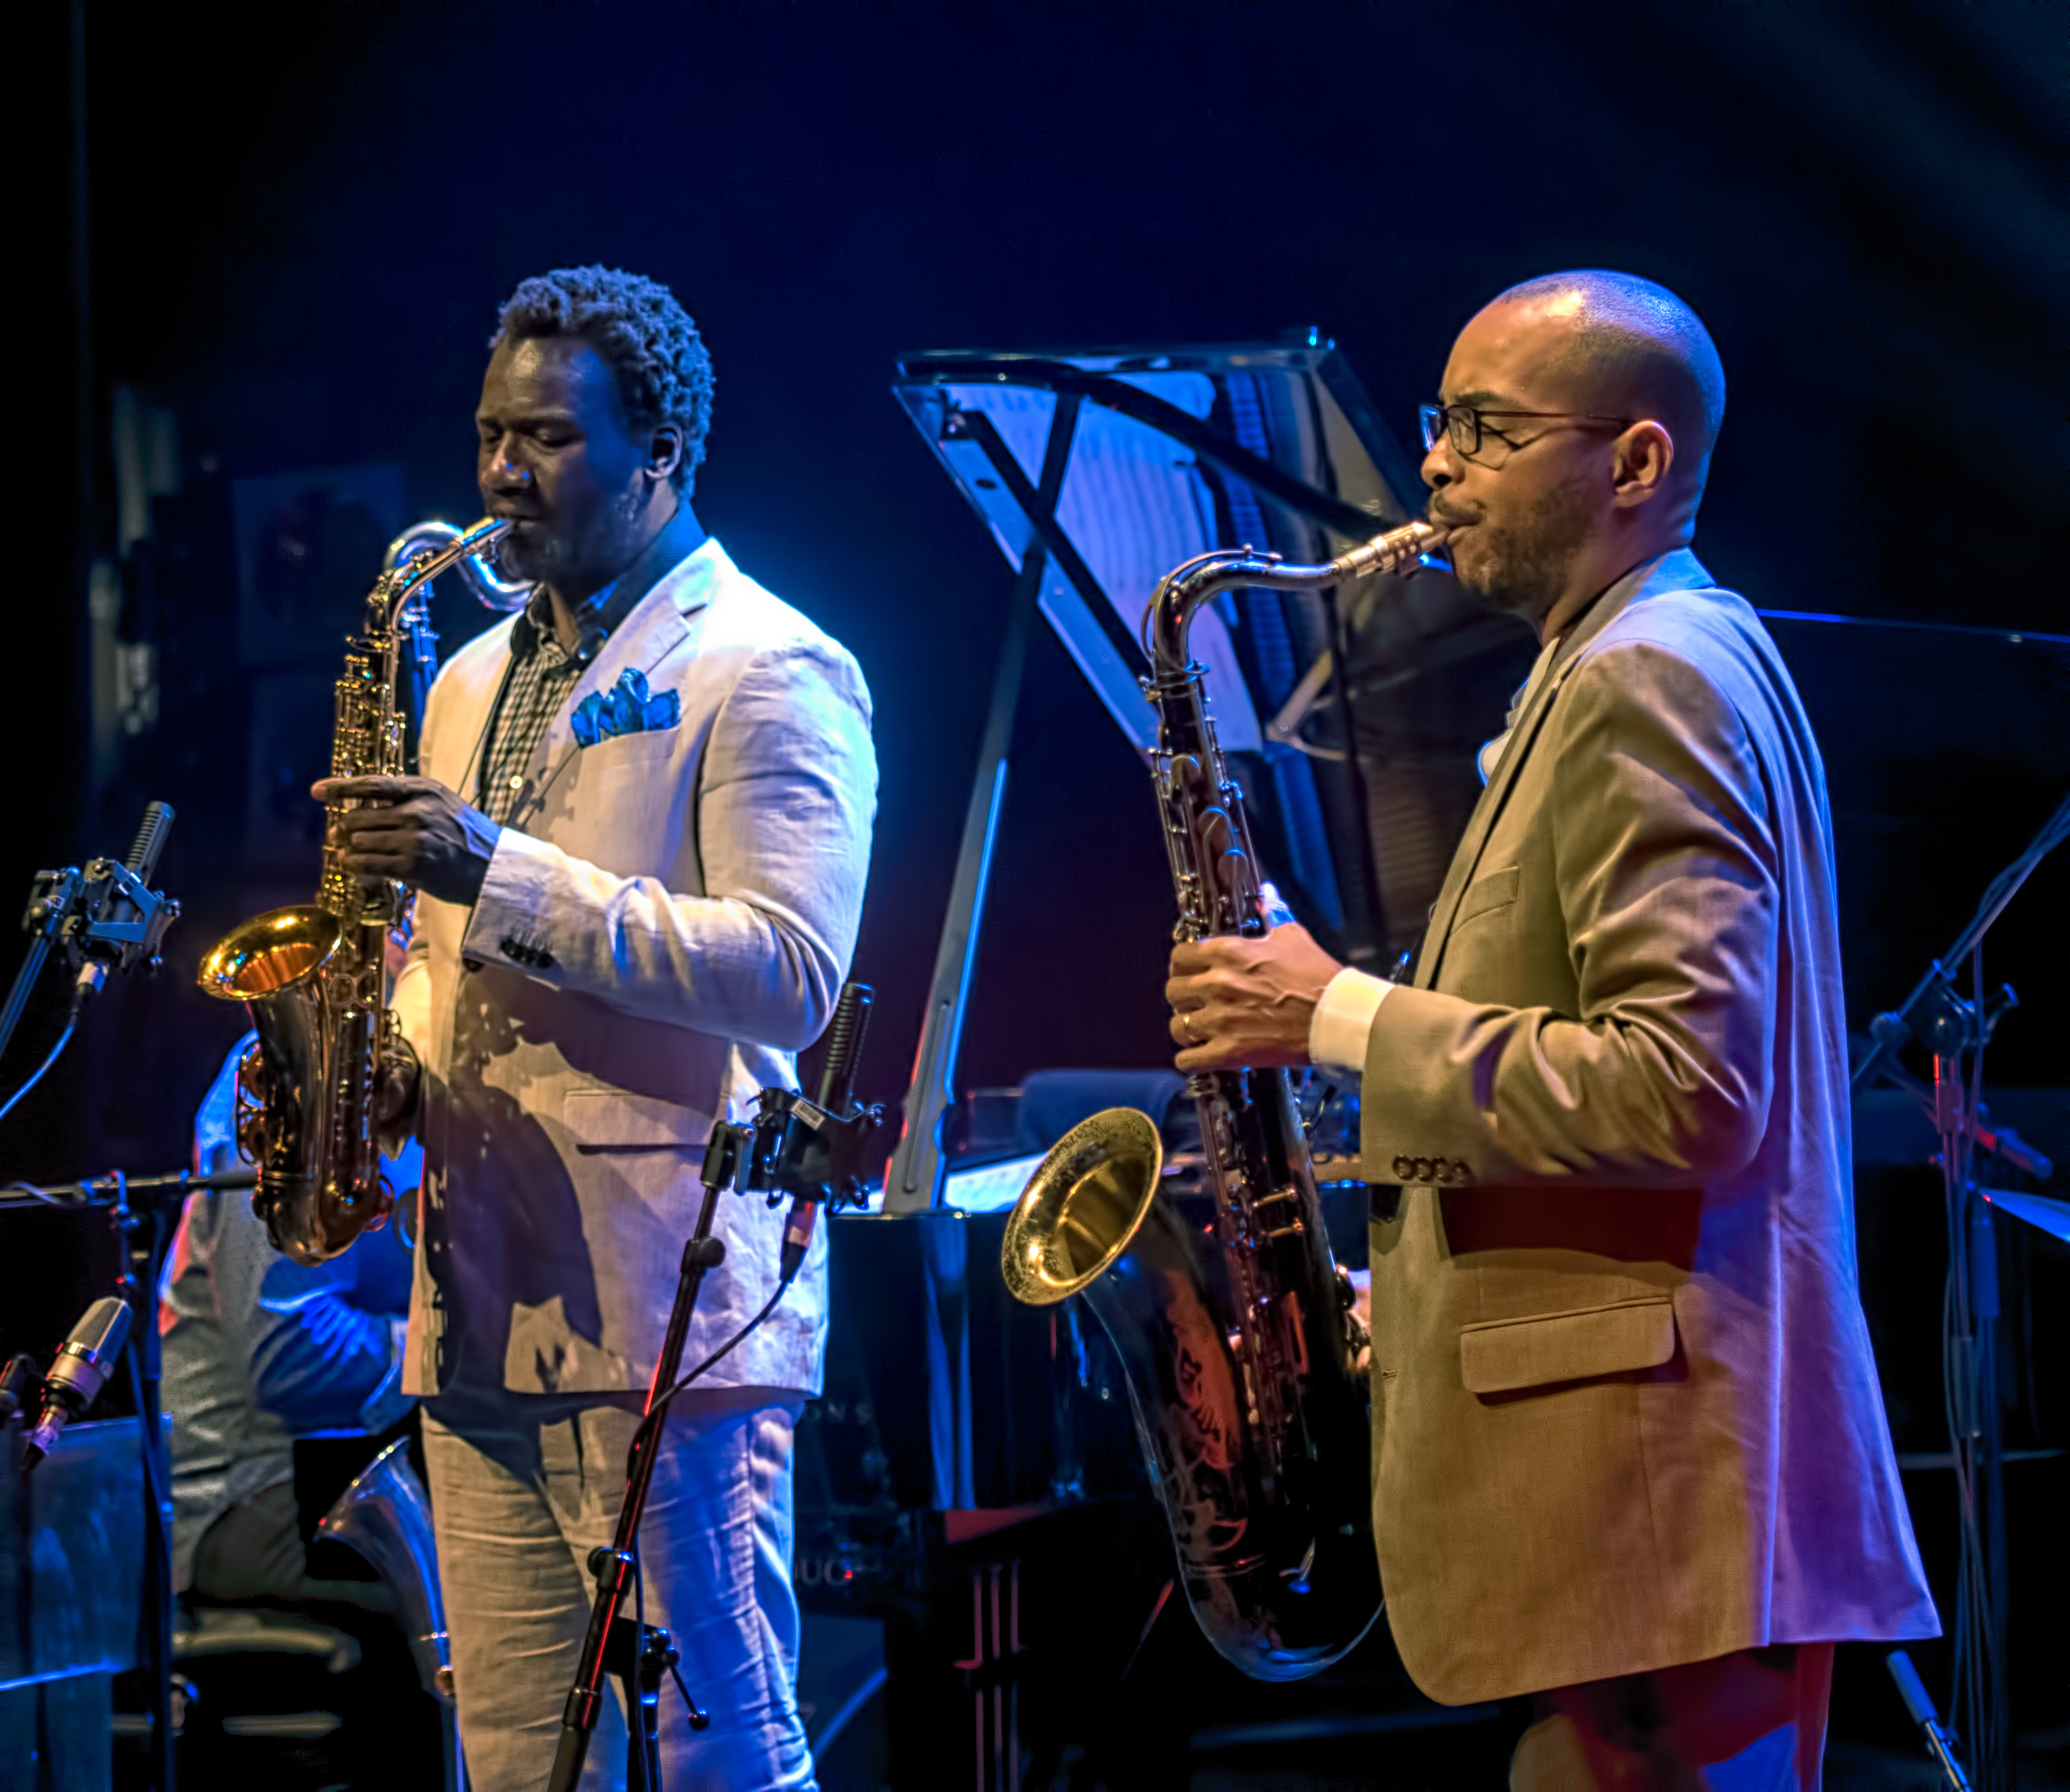 Myron Walden and Melvin Butler with Brian Blade And The Fellowship Band At The Montreal International Jazz Festival 2018